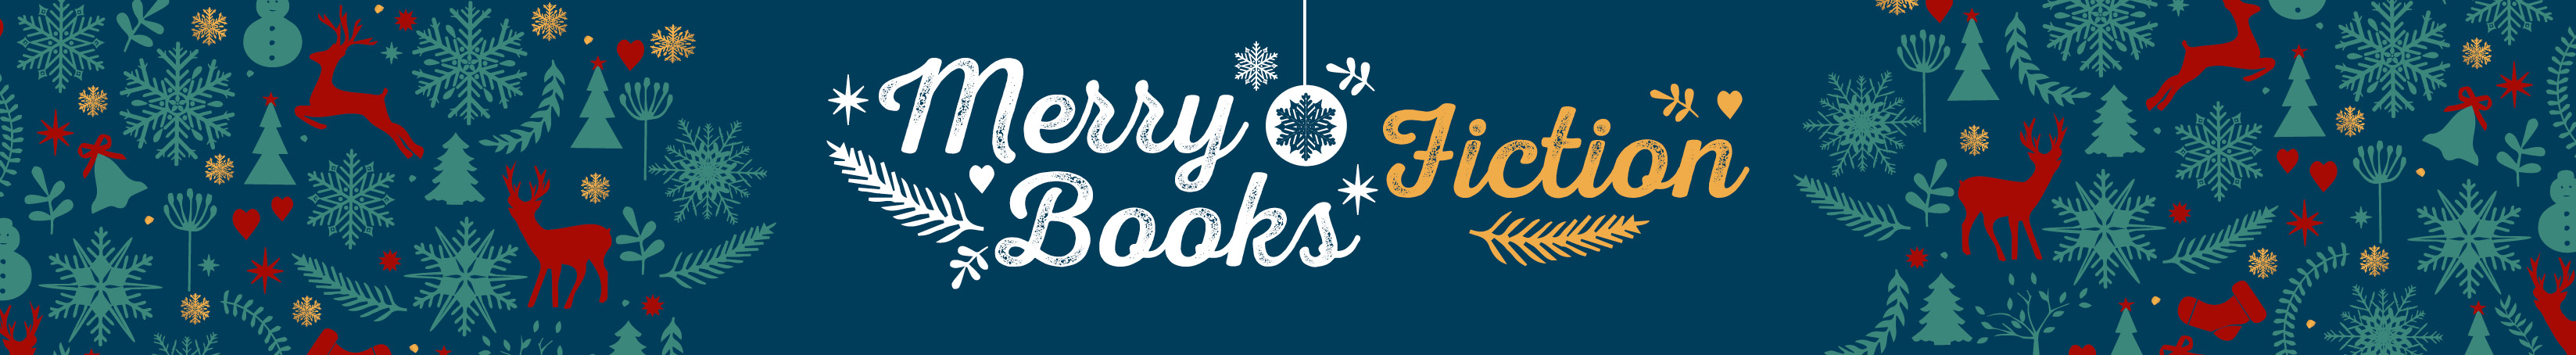 Merry Books_fiction